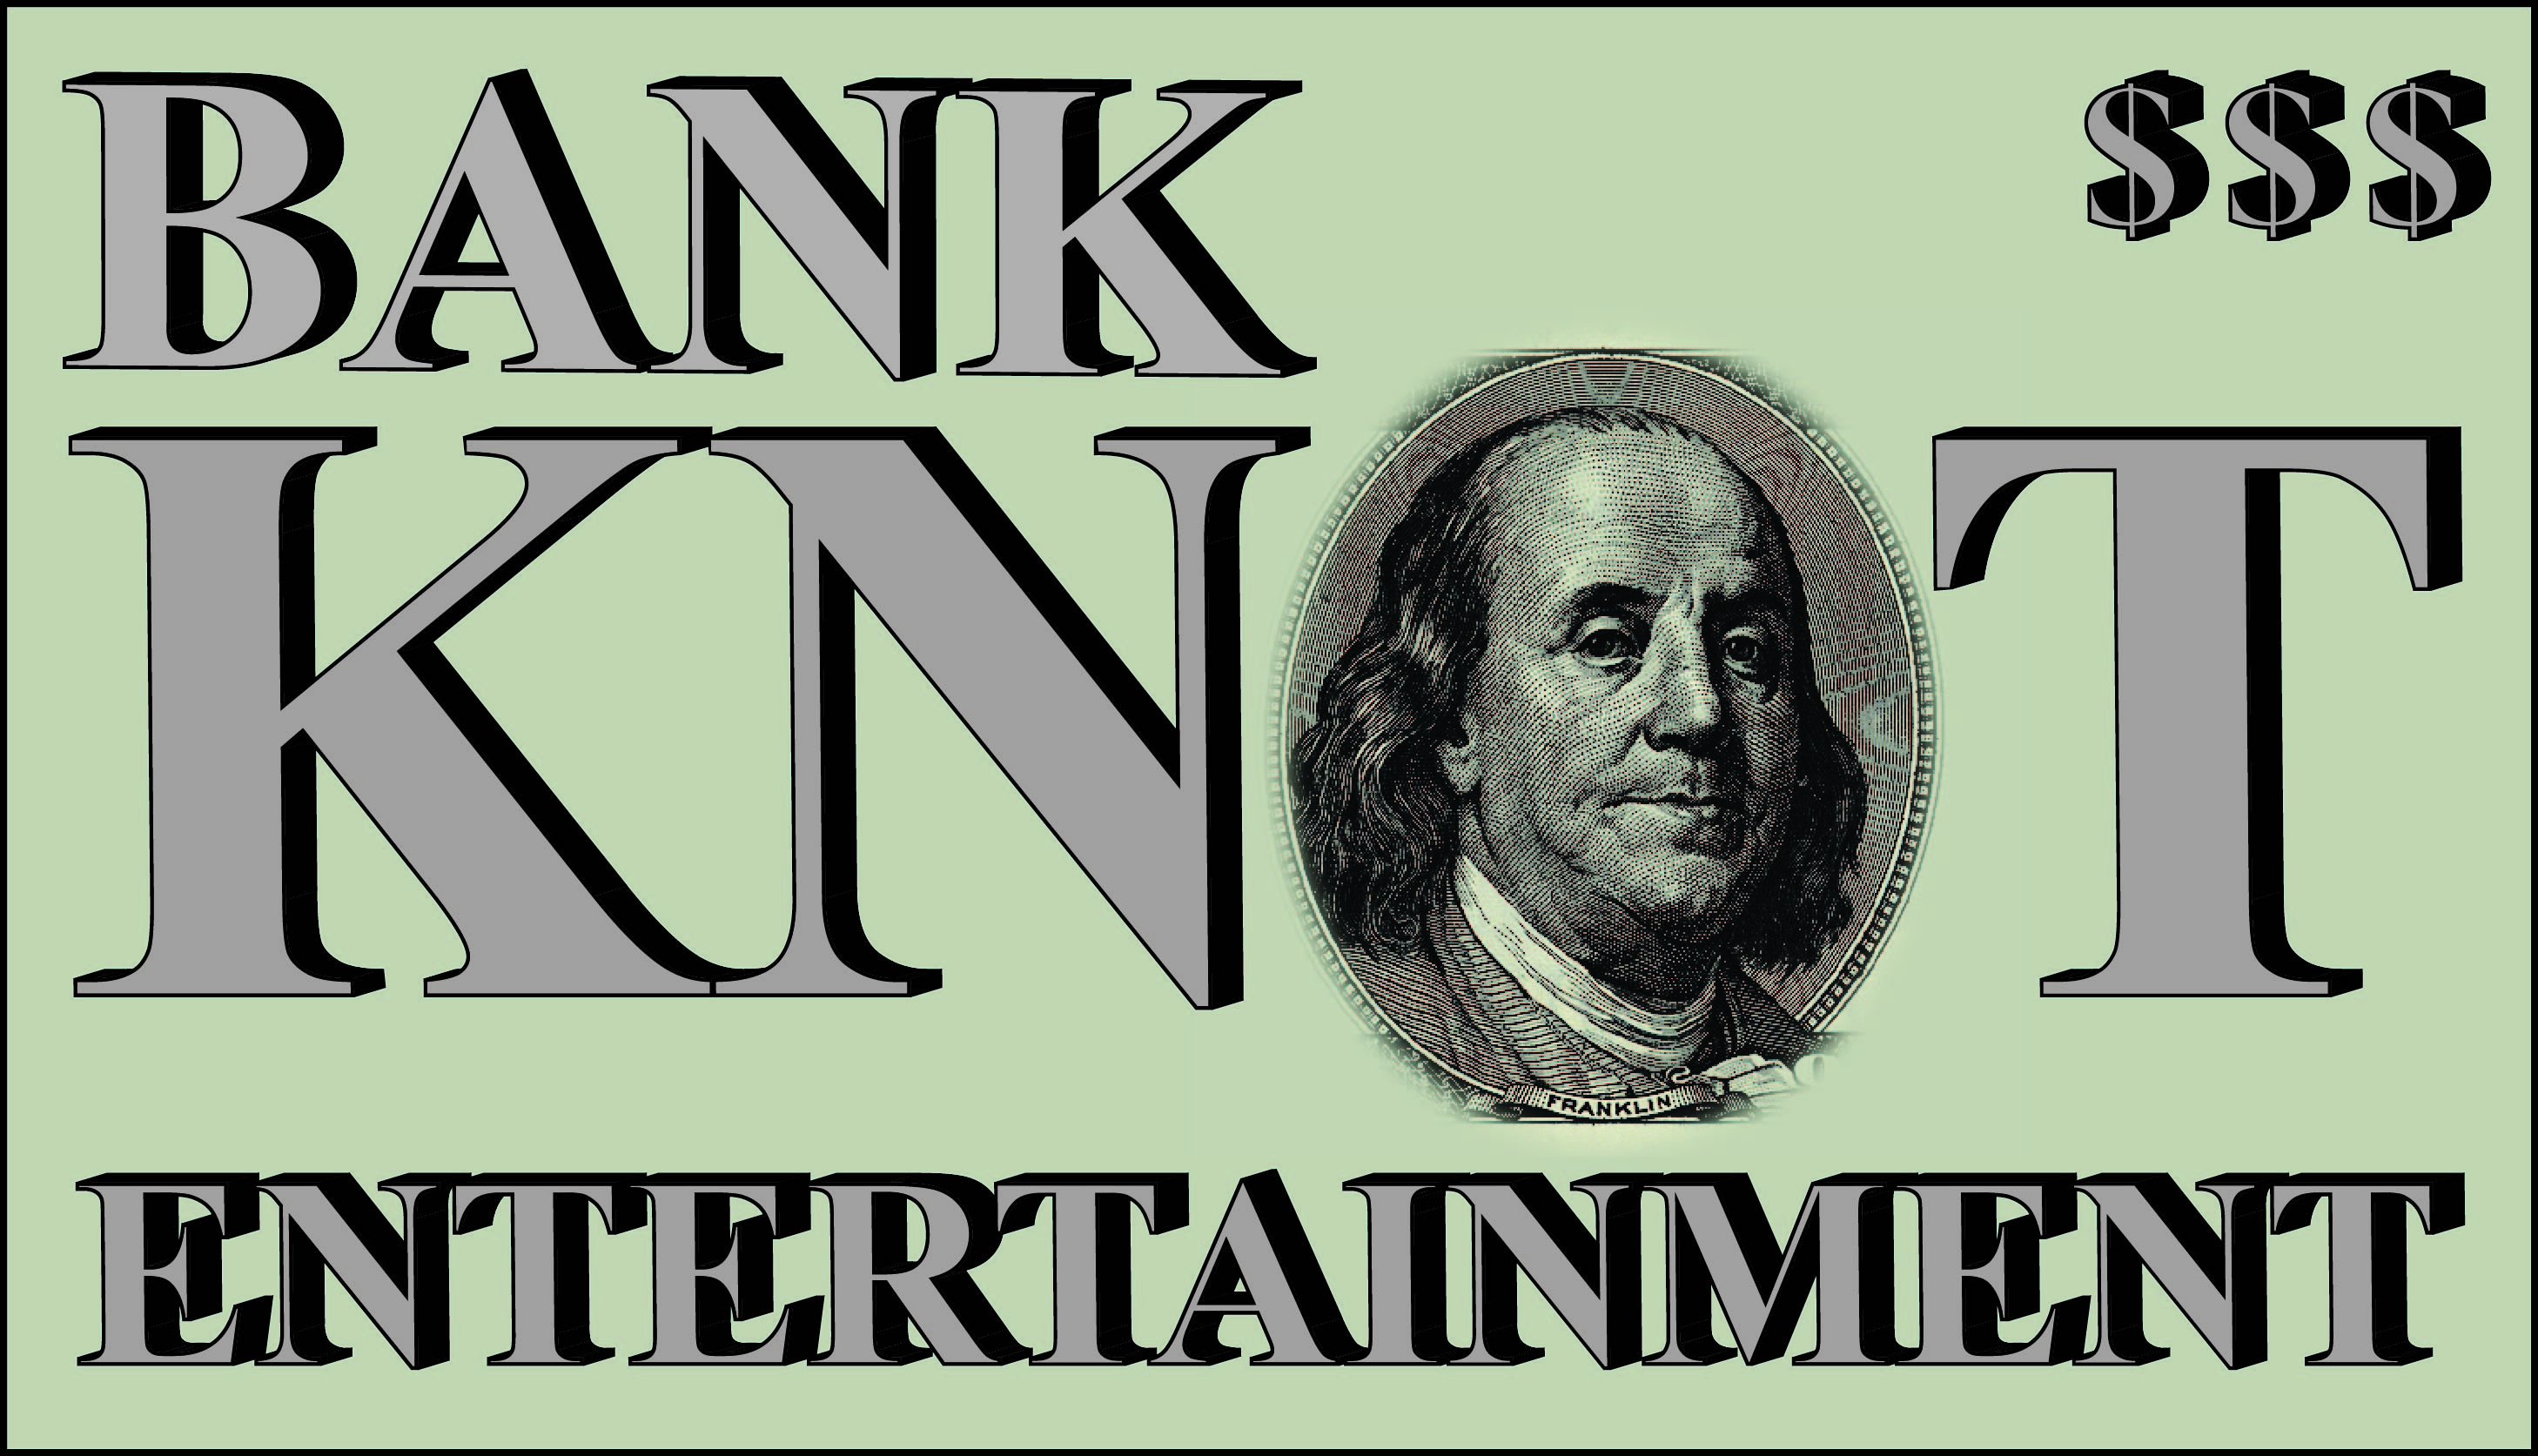 Bank Knot Ent.